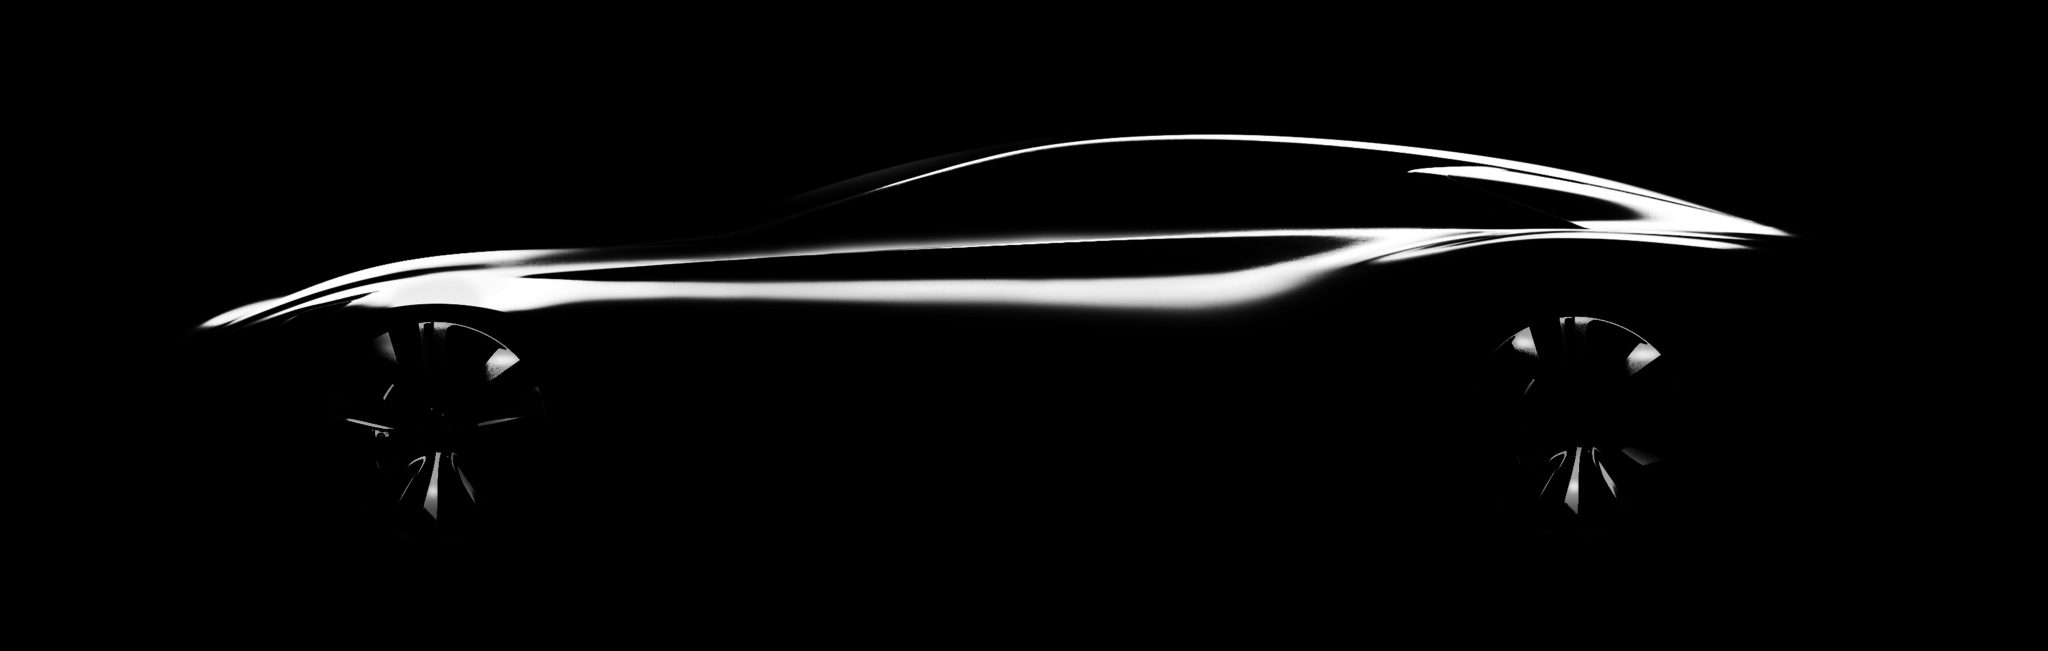 Infiniti To Expand Line Up By 60 Percent By 2020 Forcegt Com